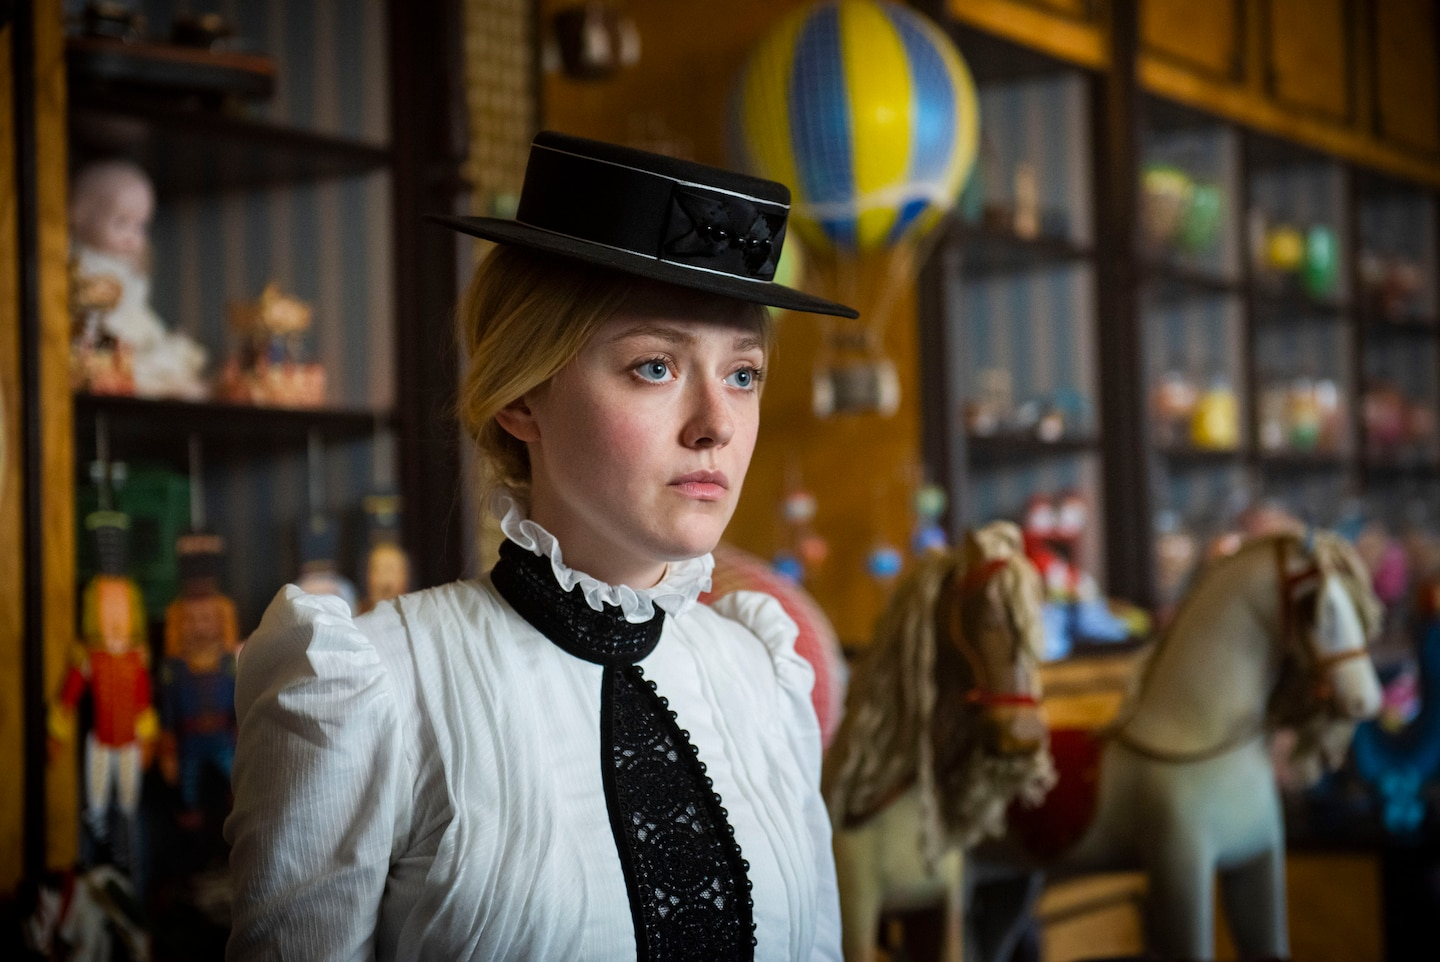 What to watch this weekend: 'The Alienist: Angel of Darkness' on TNT